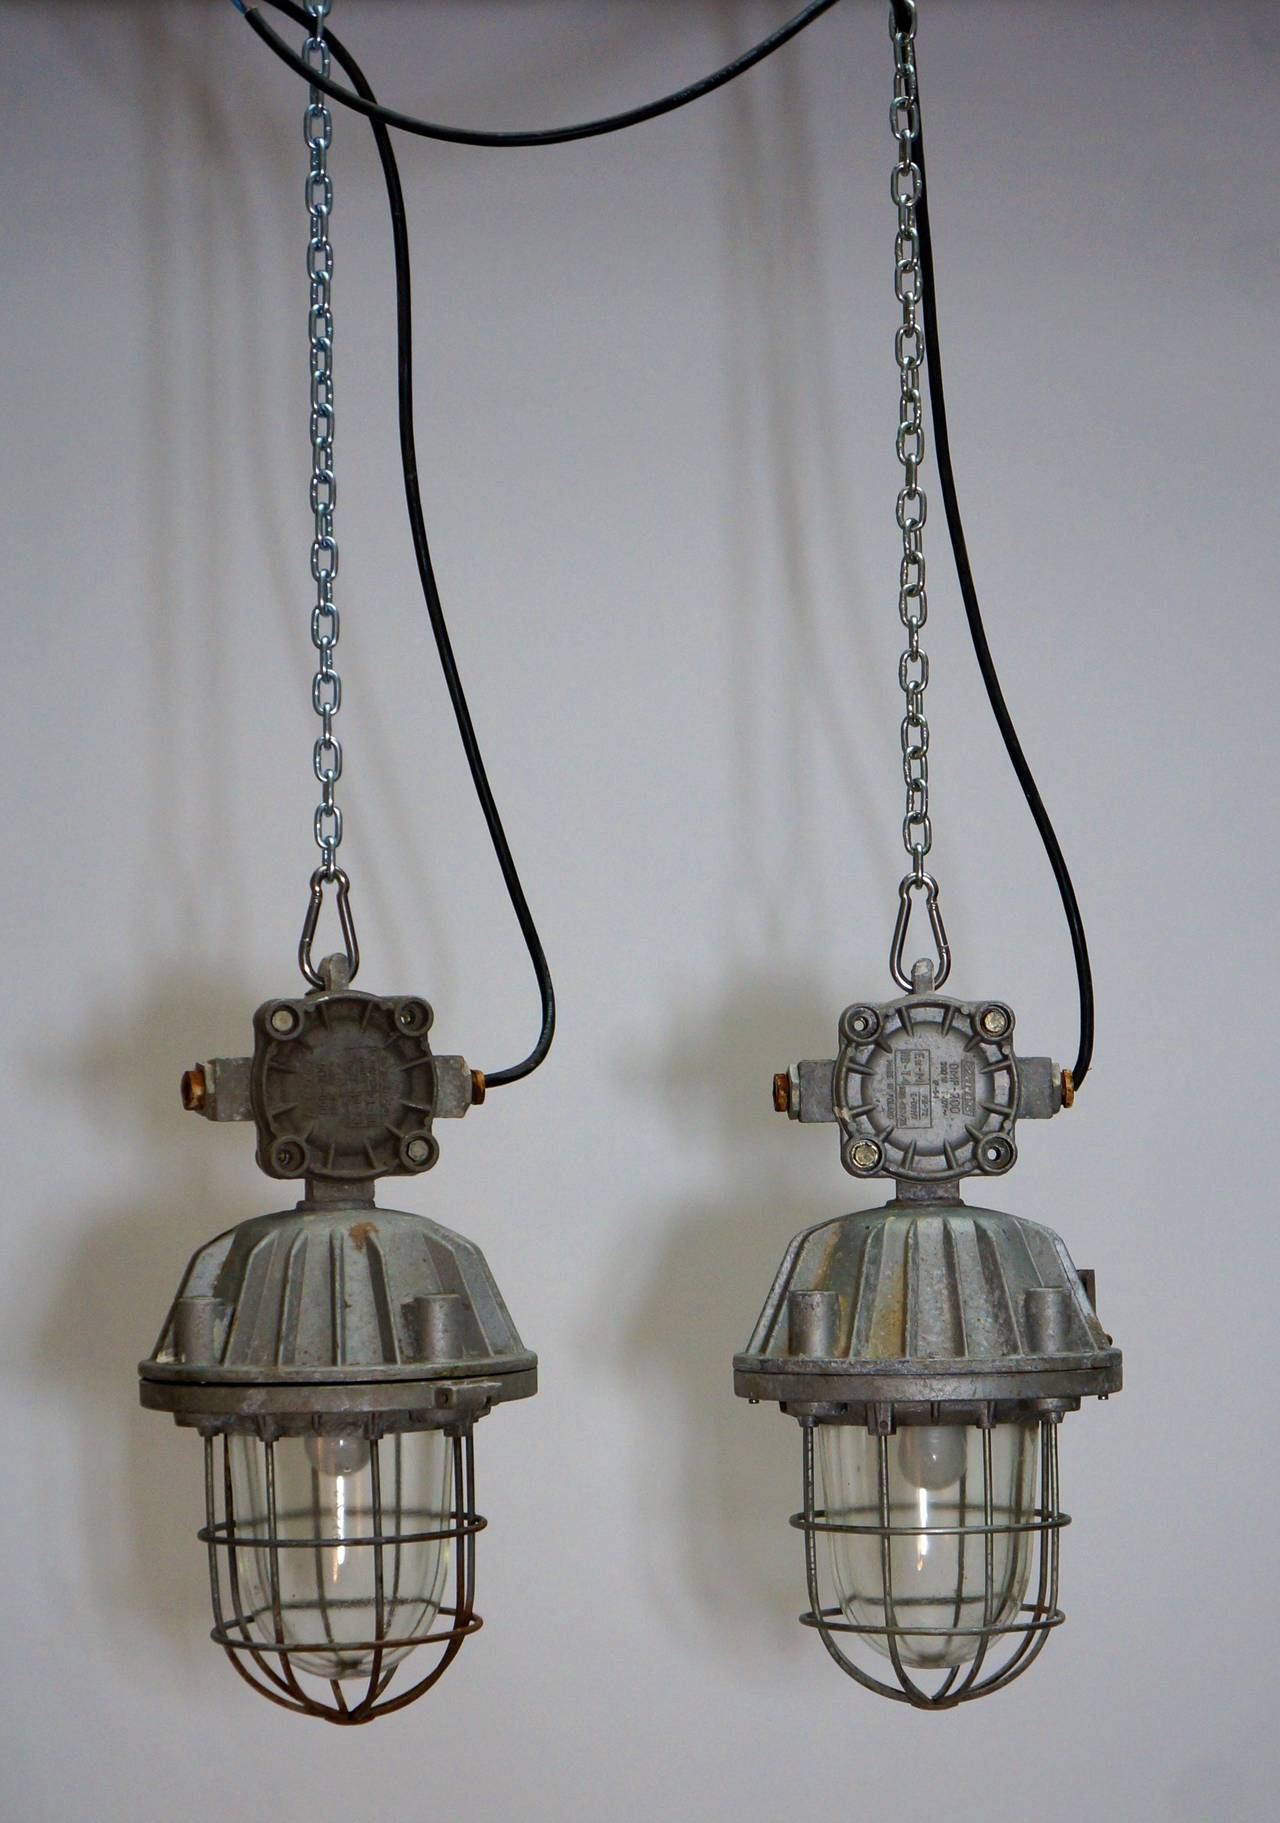 Polish pair of vintage industrial lights for sale